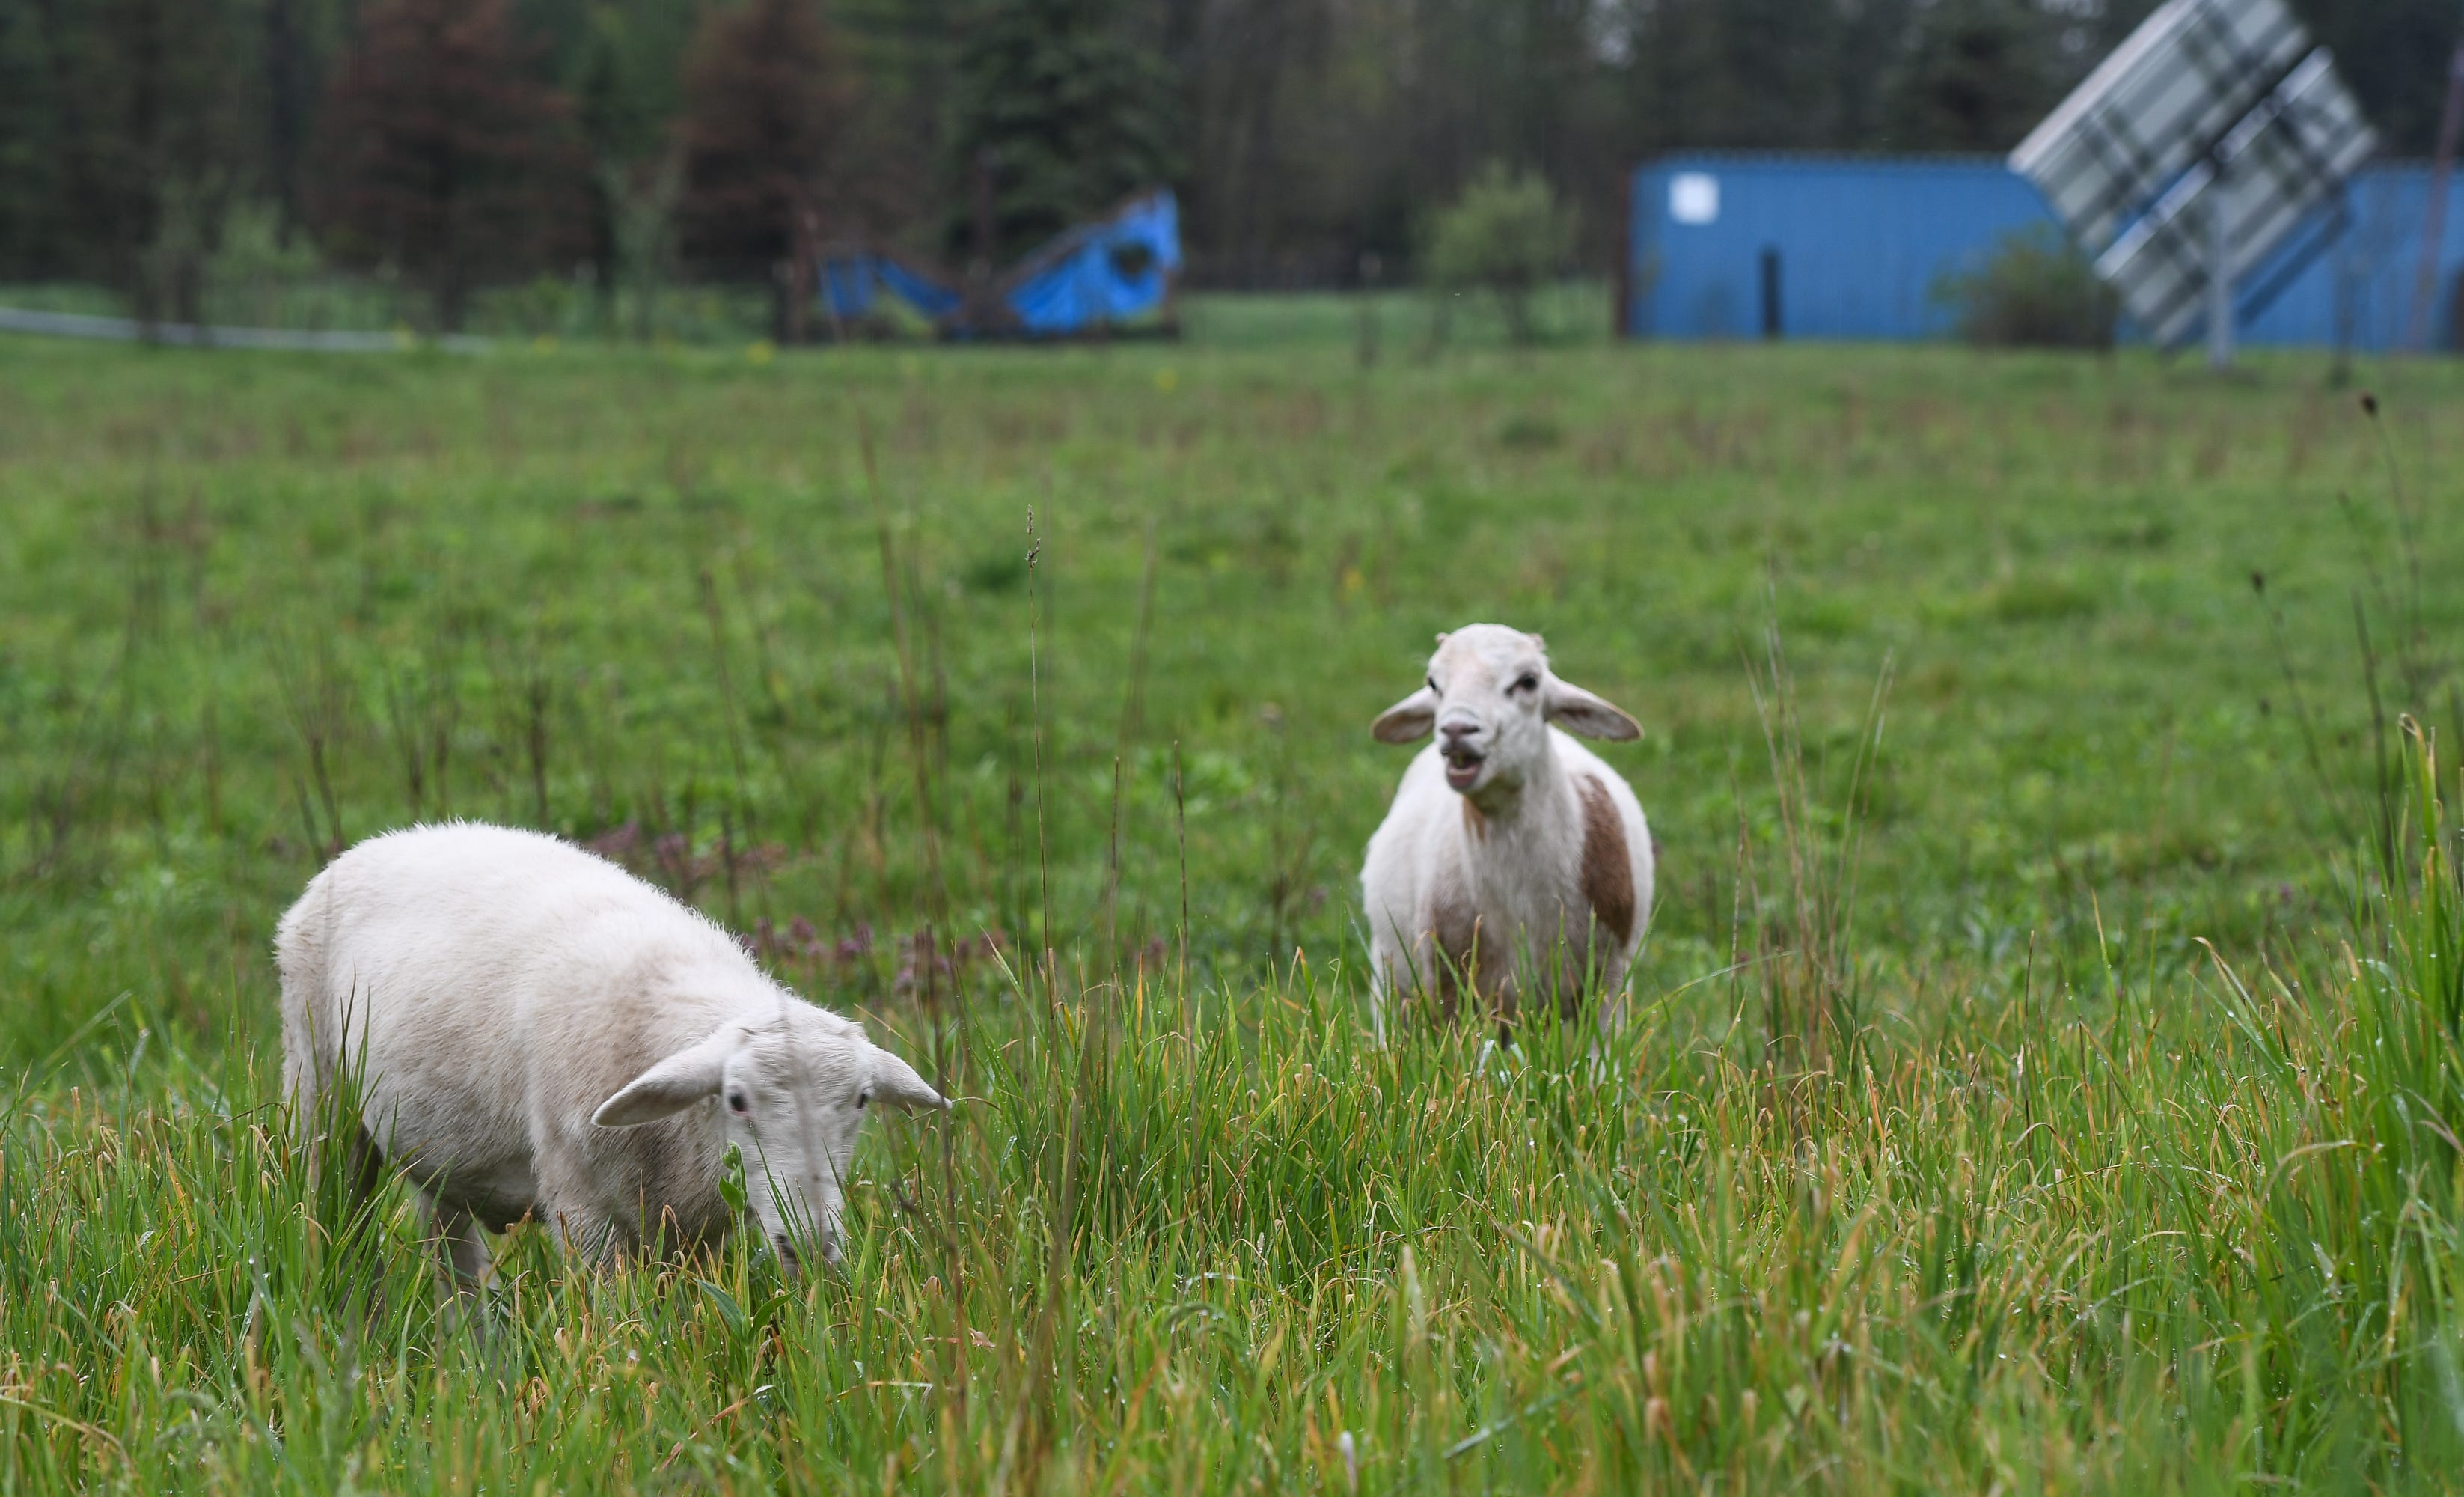 "Sheep graze at Trillium Wood Farm in Williamston, Monday, May 18, 2020.  Sisters Allie and Elise Thorp started the 131-acre farm eight years ago.  Annually, they harvest about 100 sheep, 100 hogs, 5,000 chickens, and 300 turkeys. They sell direct-to-consumers at farmers markets and offer online ordering and pickup at the farm. ""We've never been busier, we're having a hard time keeping up with demand,"" Elise says."